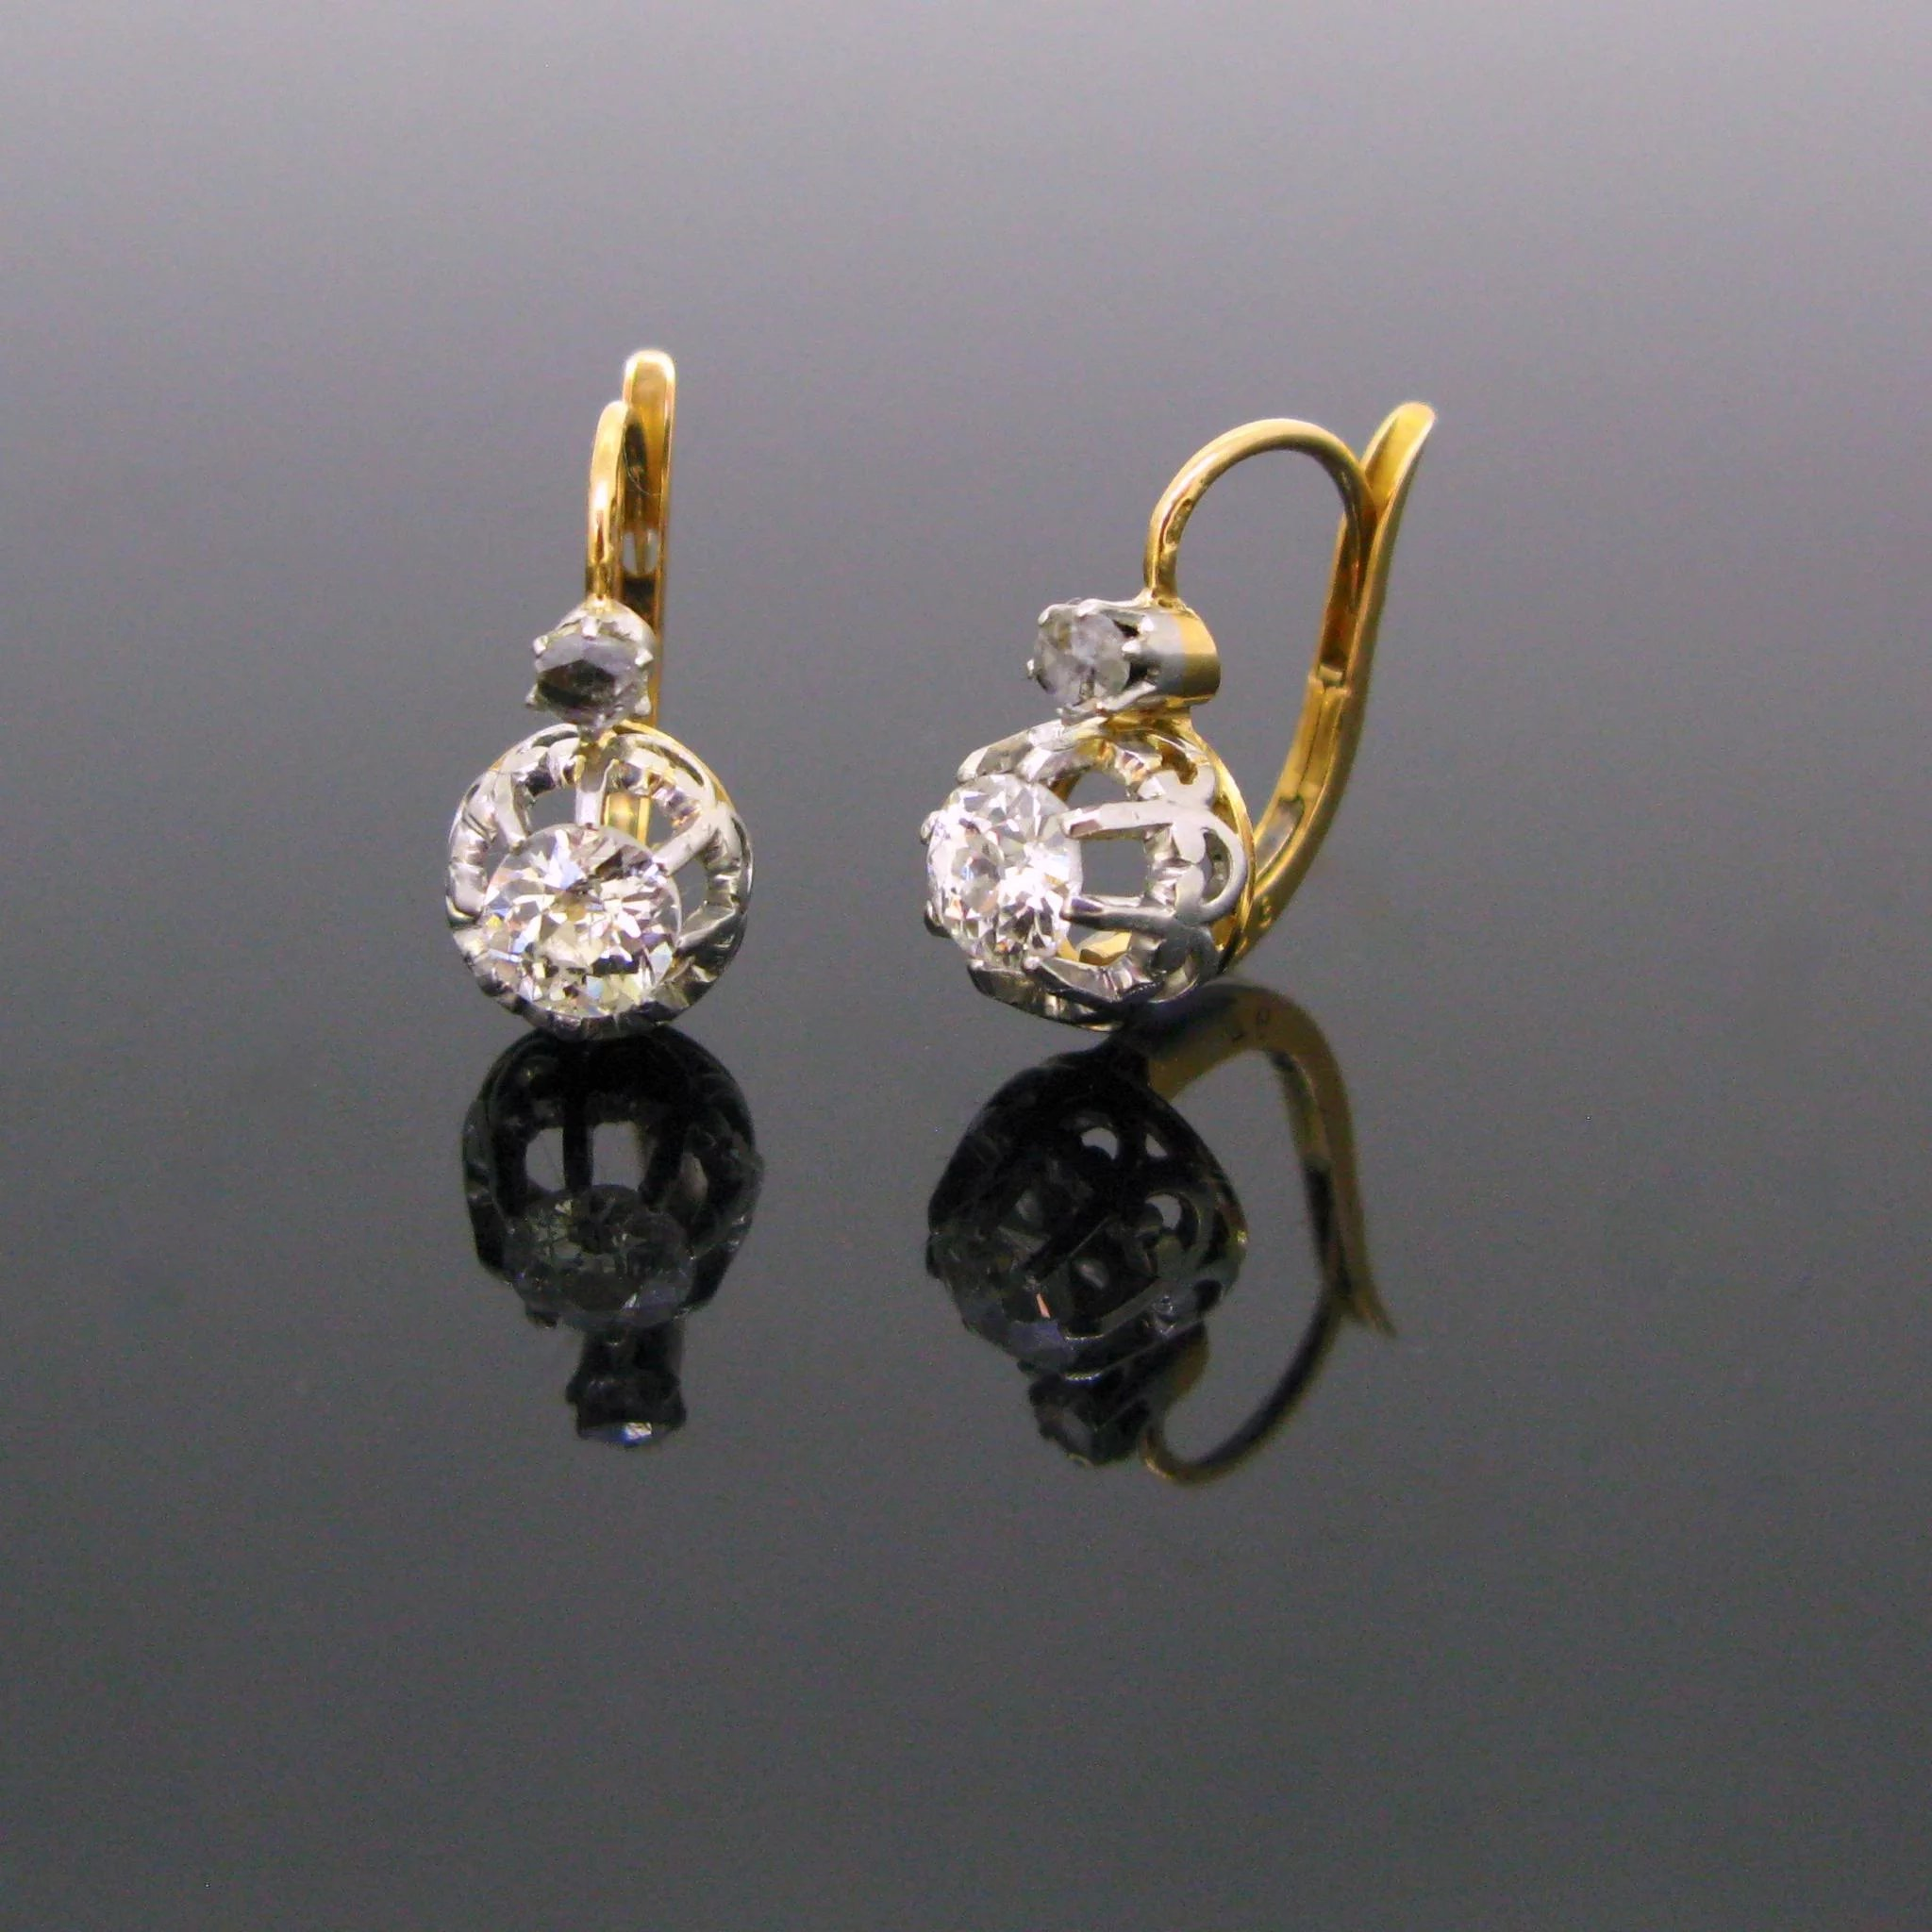 christie s and christies topped gold eco earrings jewels diamond antique silver online